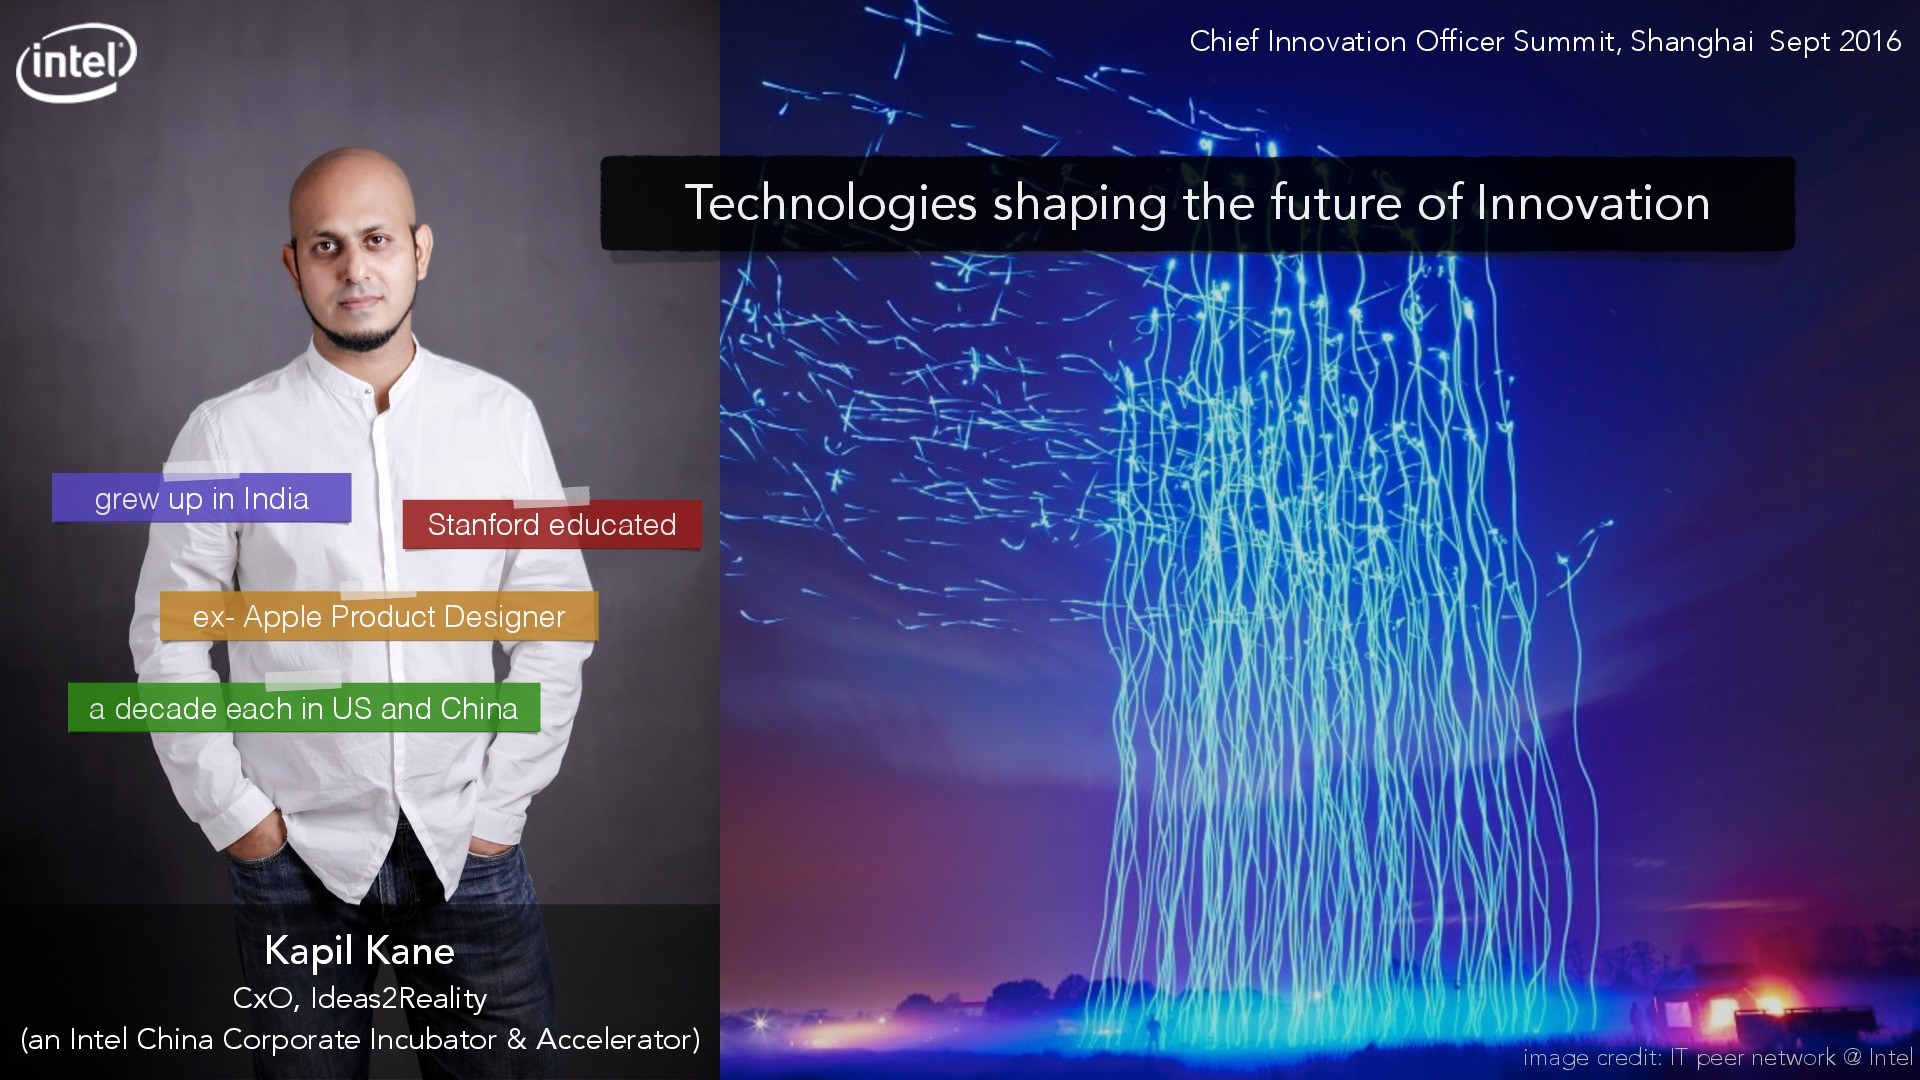 Technologies driving the future of Innovation